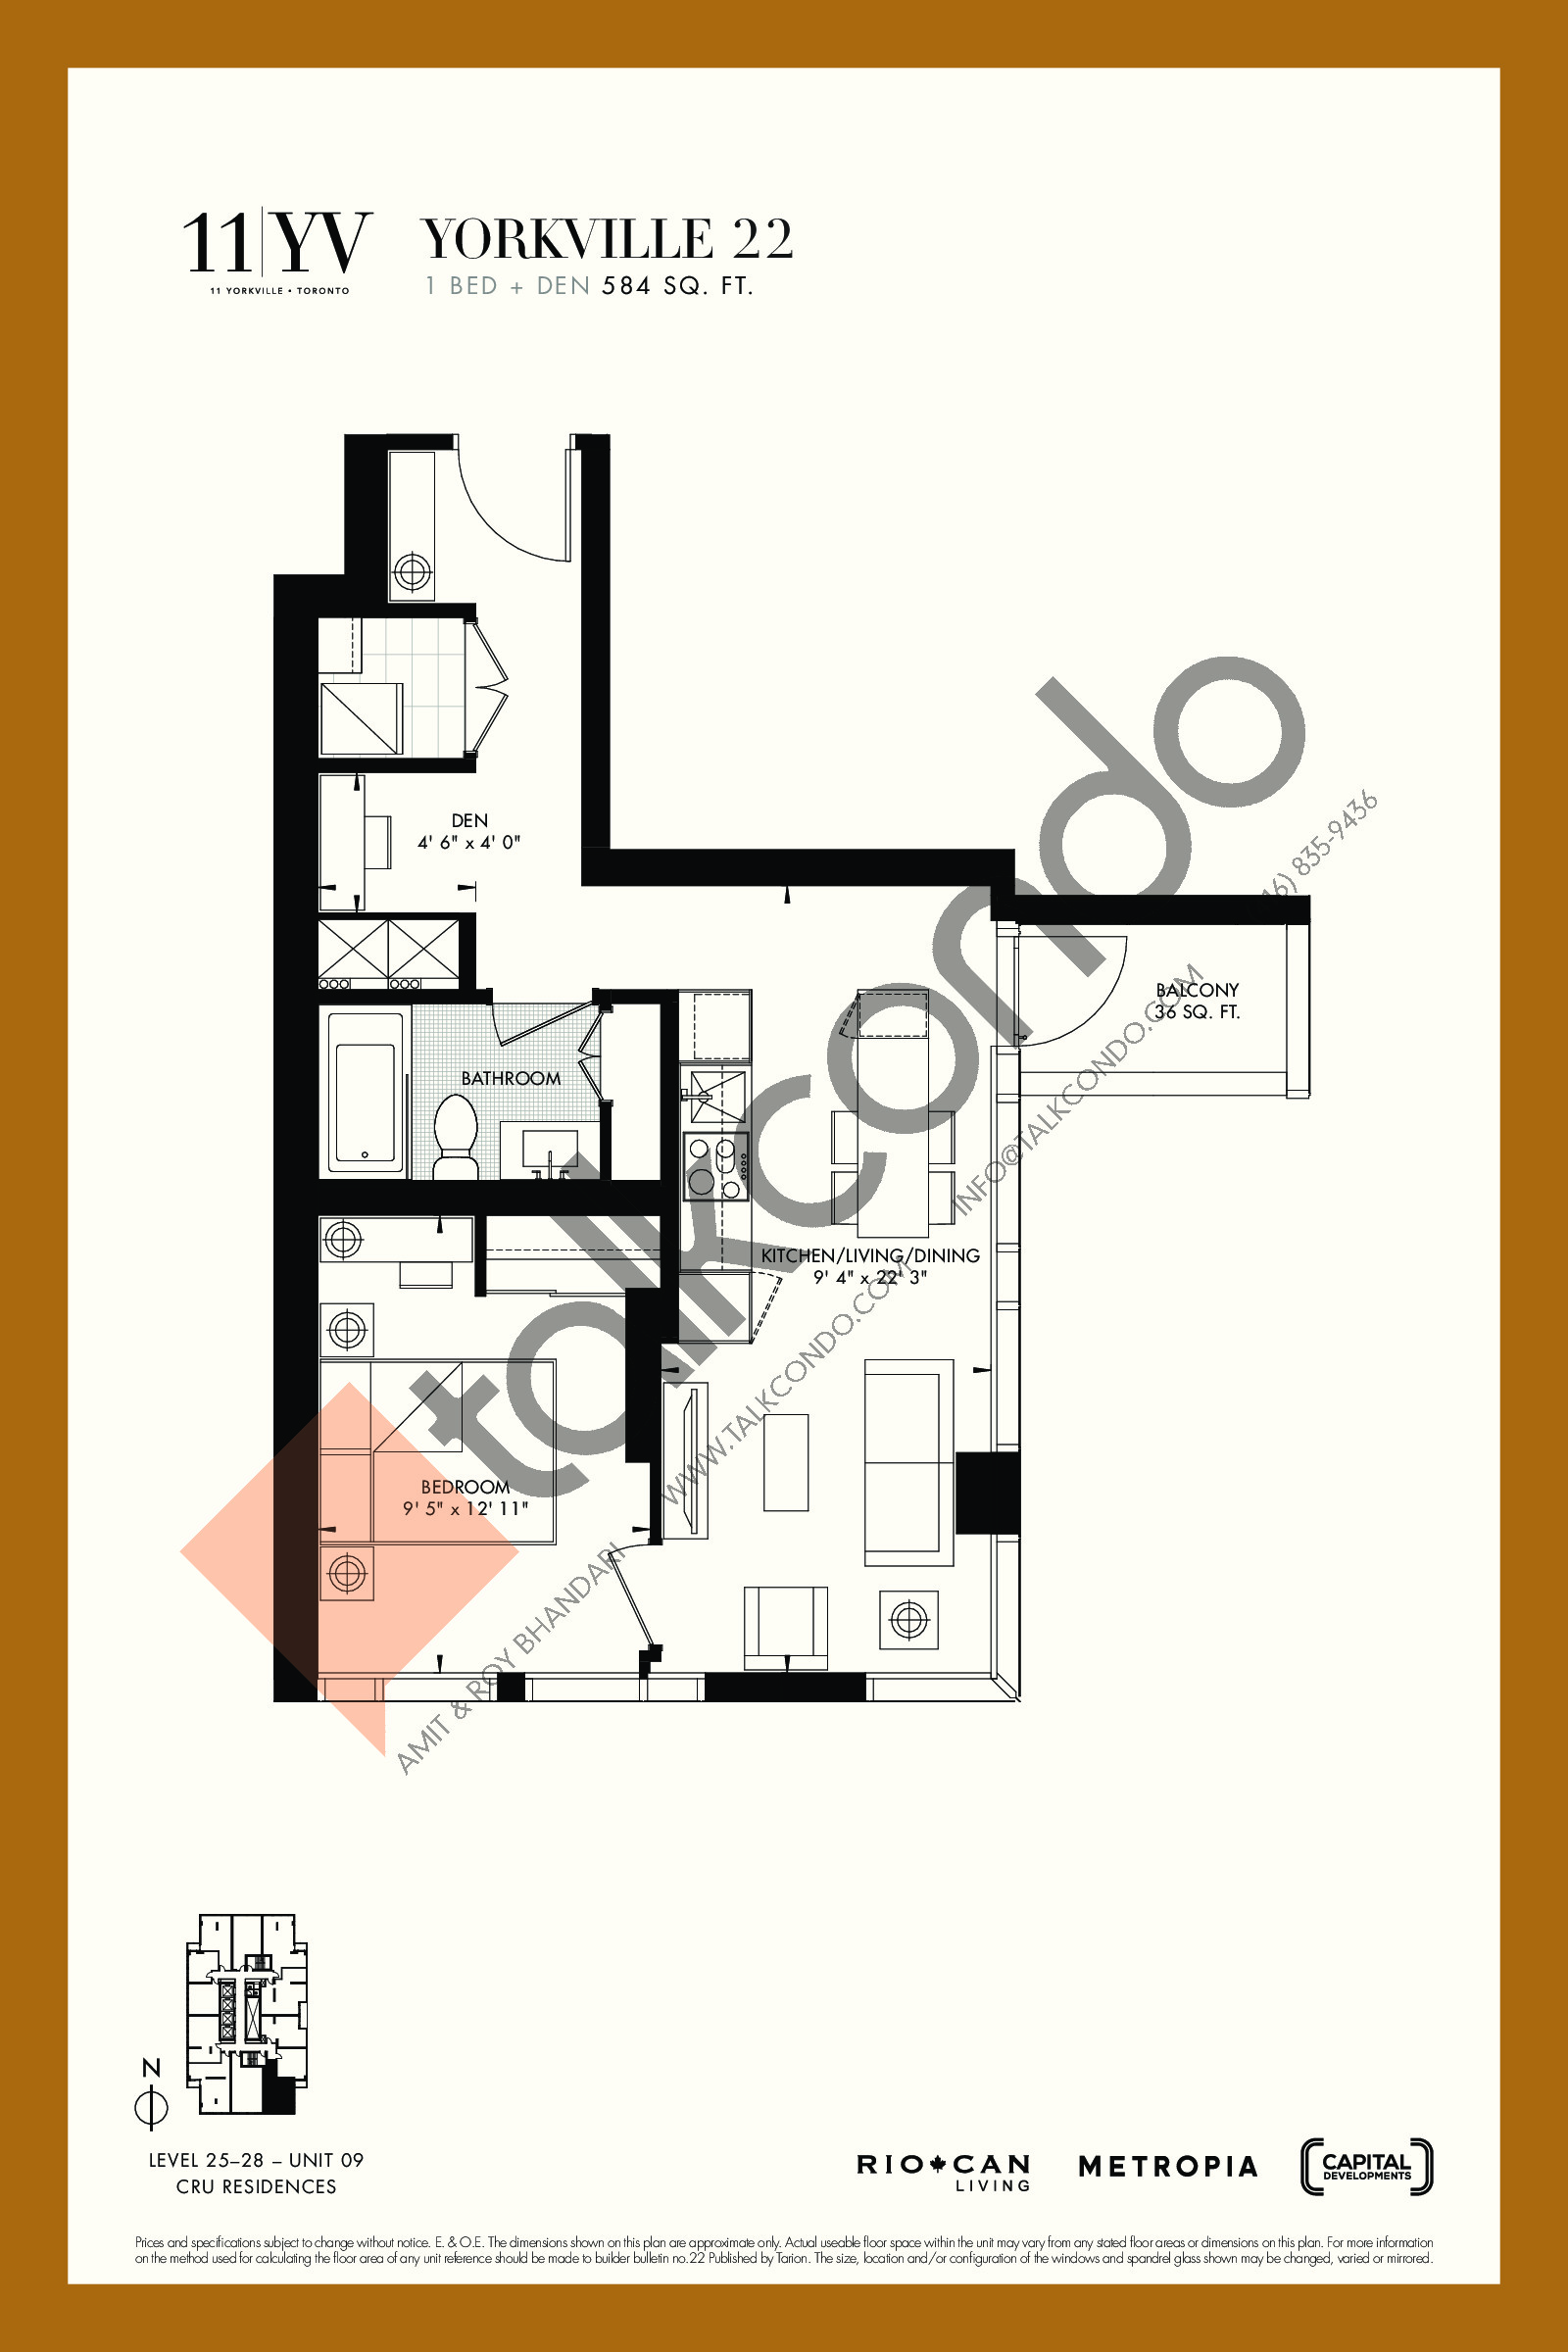 Yorkville 22 Floor Plan at 11YV Condos - 584 sq.ft